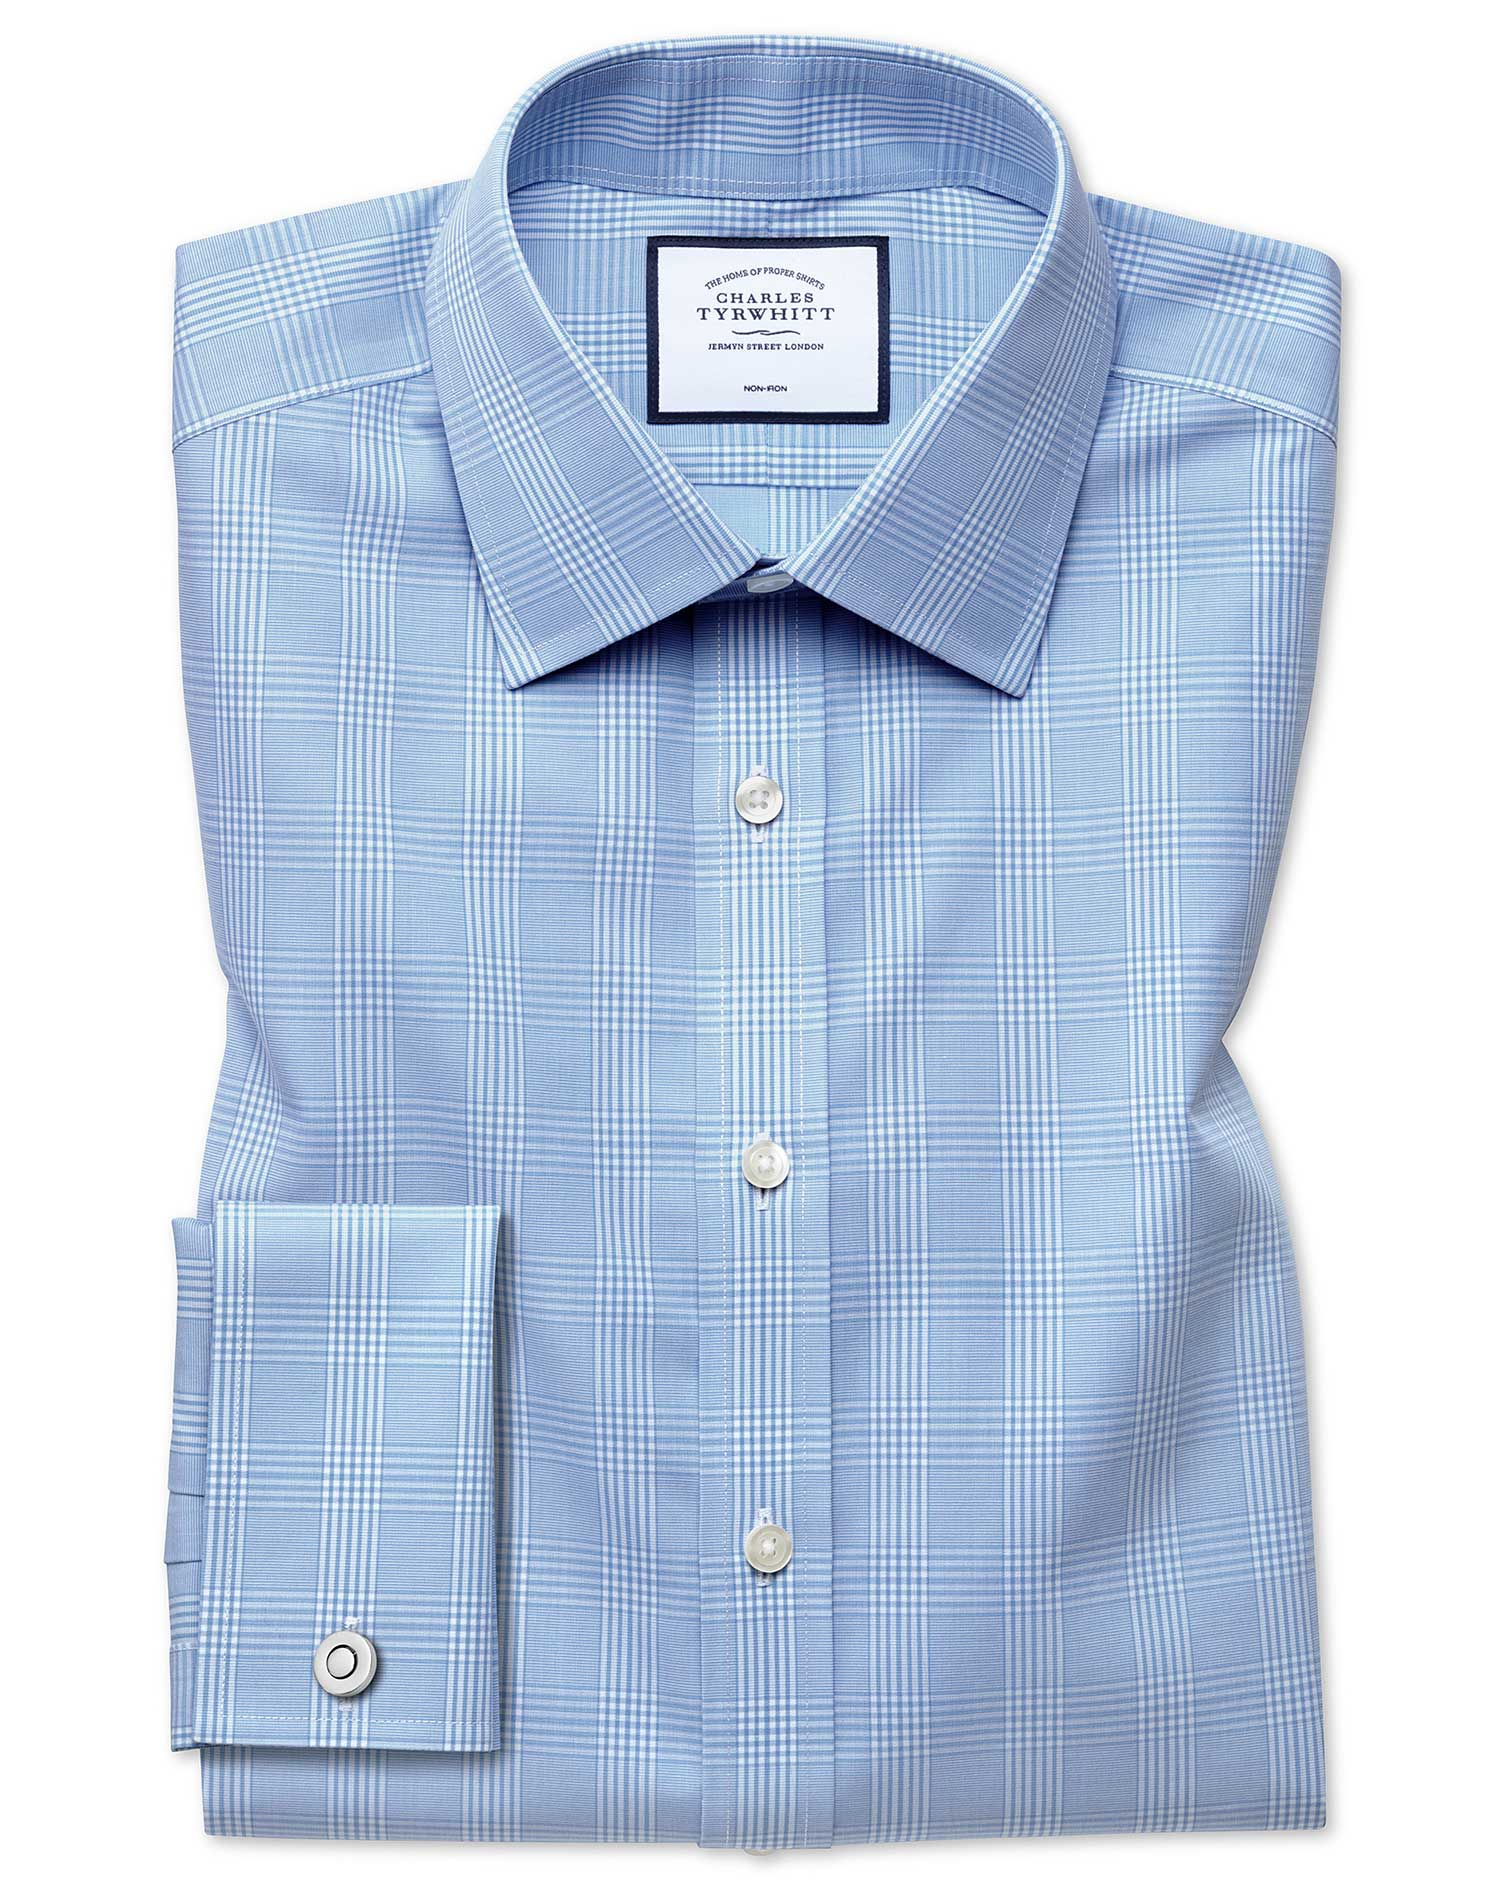 Extra Slim Fit Non-Iron Prince Of Wales Sky Blue Cotton Formal Shirt Double Cuff Size 16/34 by Charl